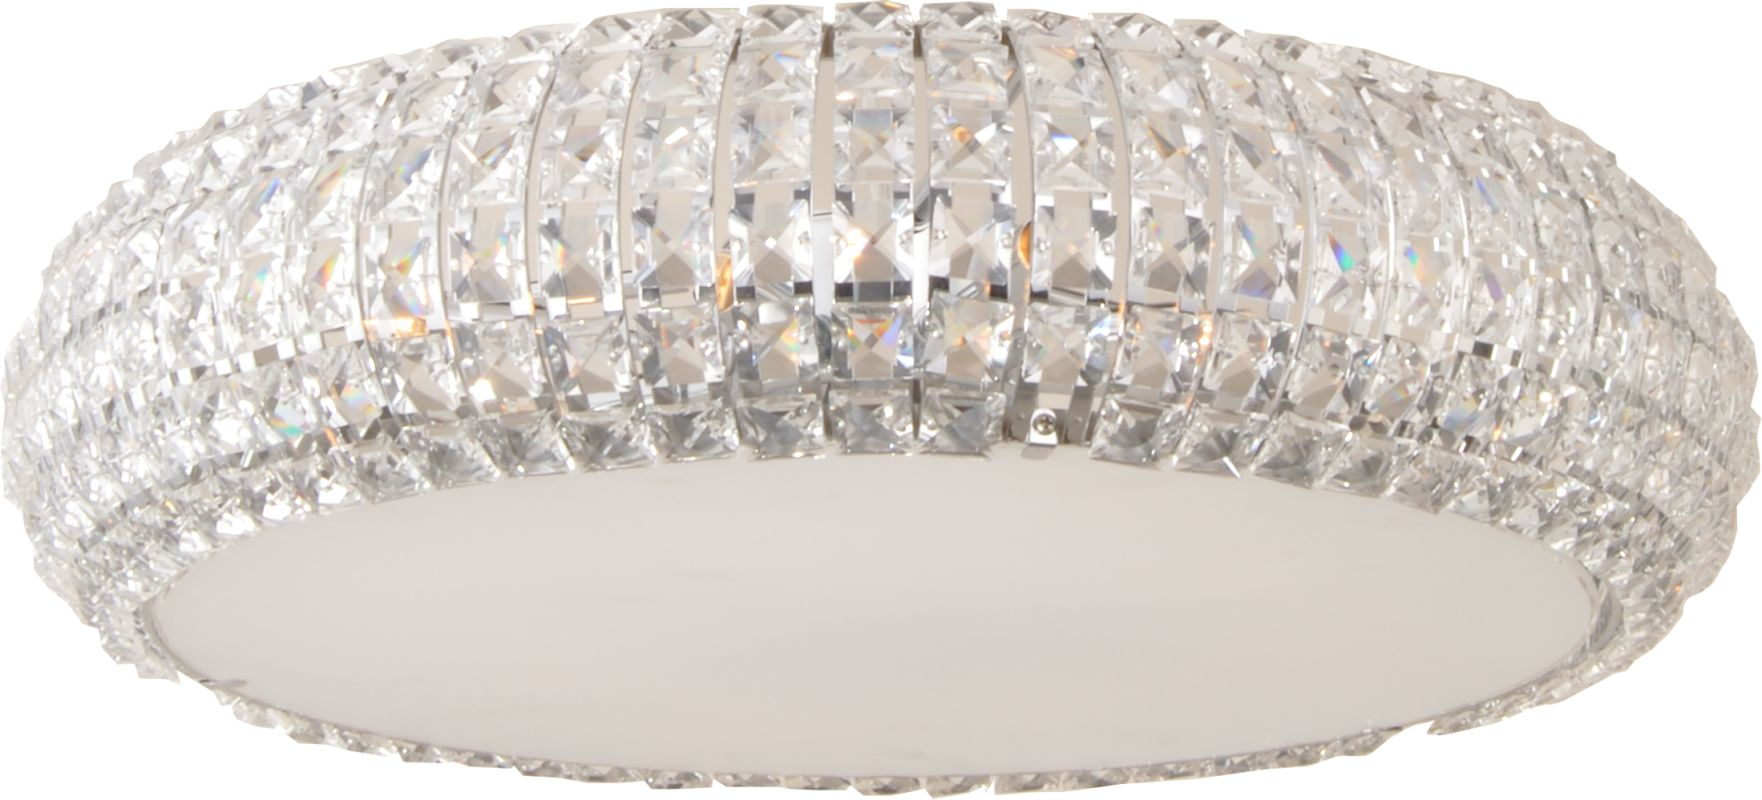 ET2 E21802-20PC Polished Chrome Contemporary Bijou Ceiling Light Sale $698.00 ITEM: bci1276069 ID#:E21802-20PC UPC: 845094032663 :